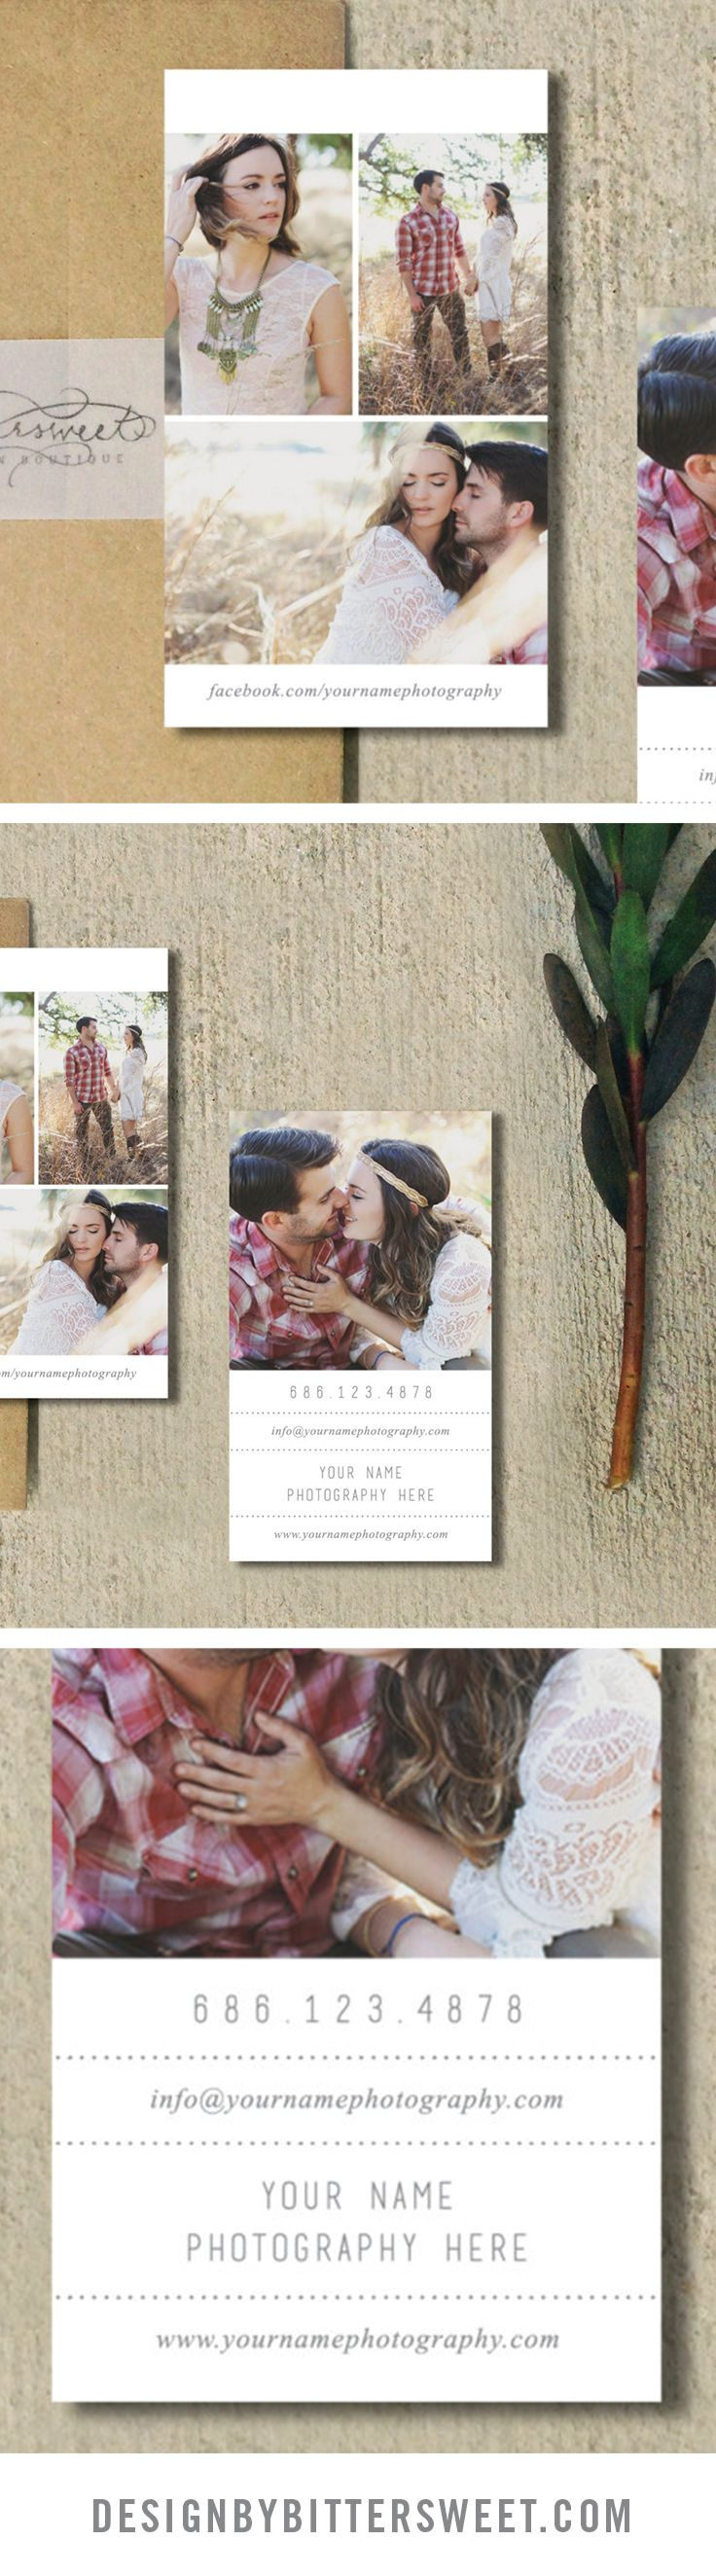 32 best photography business cards images on pinterest business business card template vertical business card template for photographers photoshop templates moo business cards psd template fbccfo Images